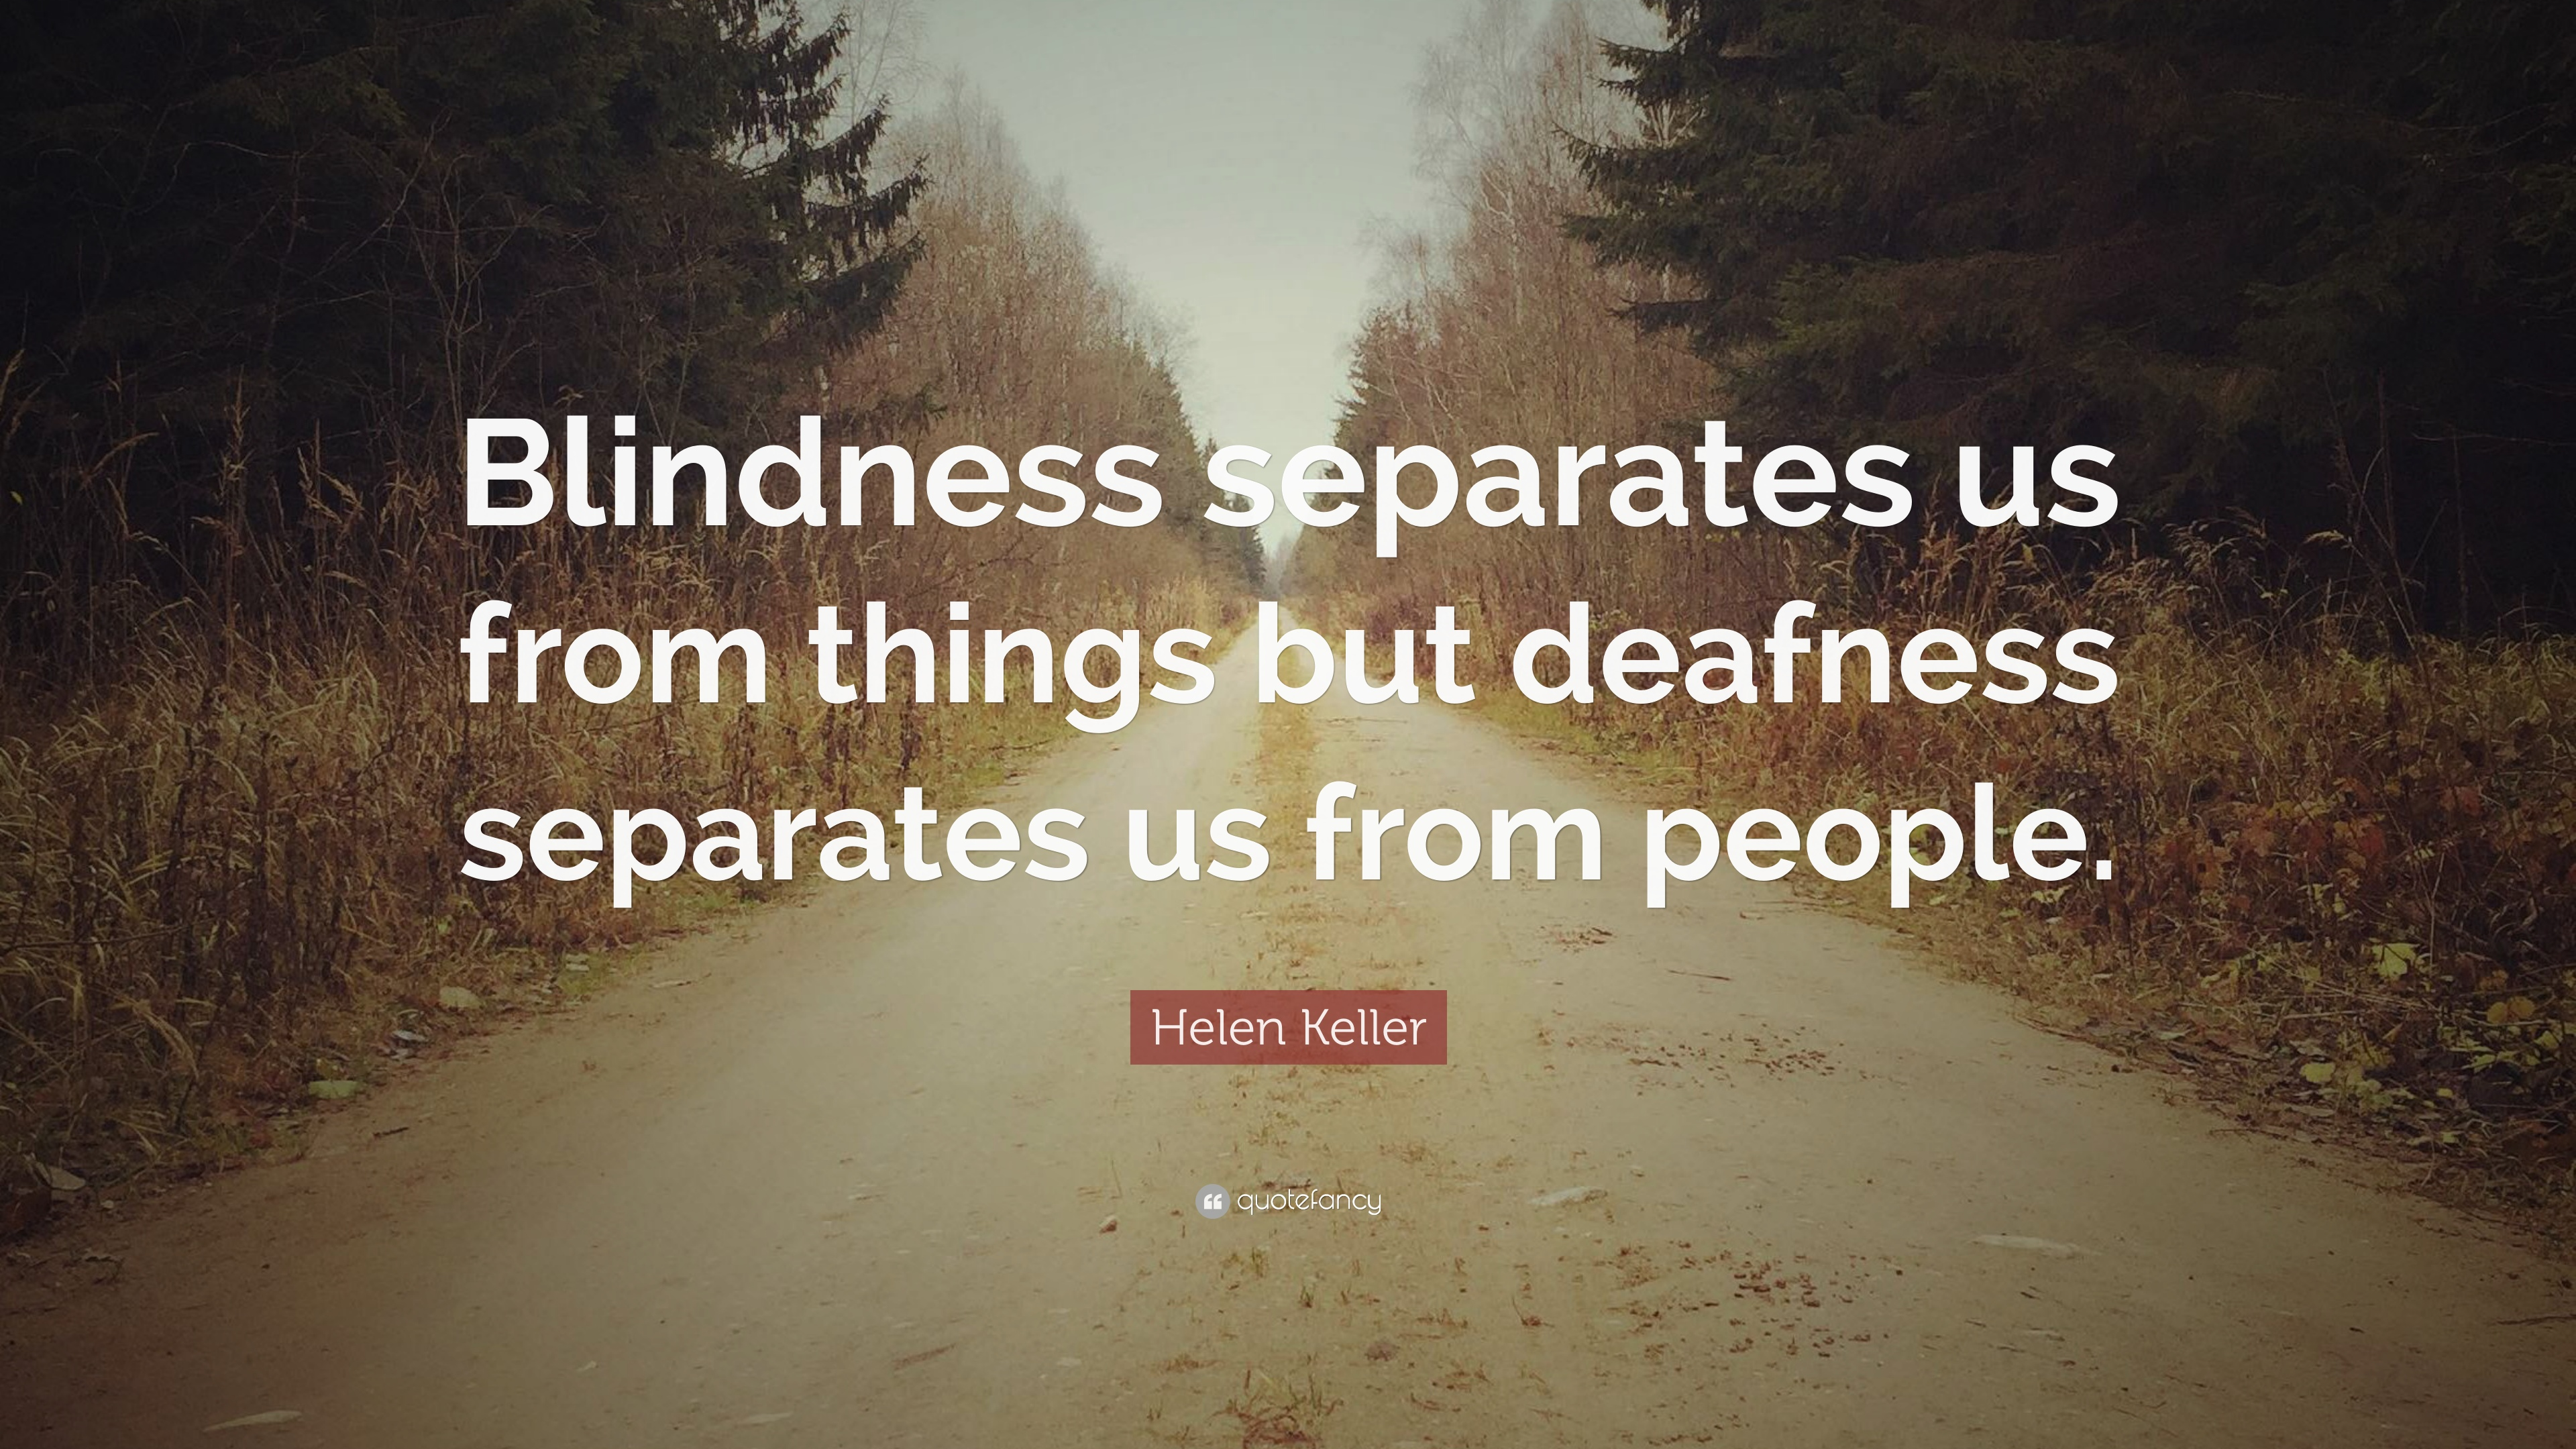 Helen keller quote blindness separates us from things but deafness helen keller quote blindness separates us from things but deafness separates us from people altavistaventures Image collections